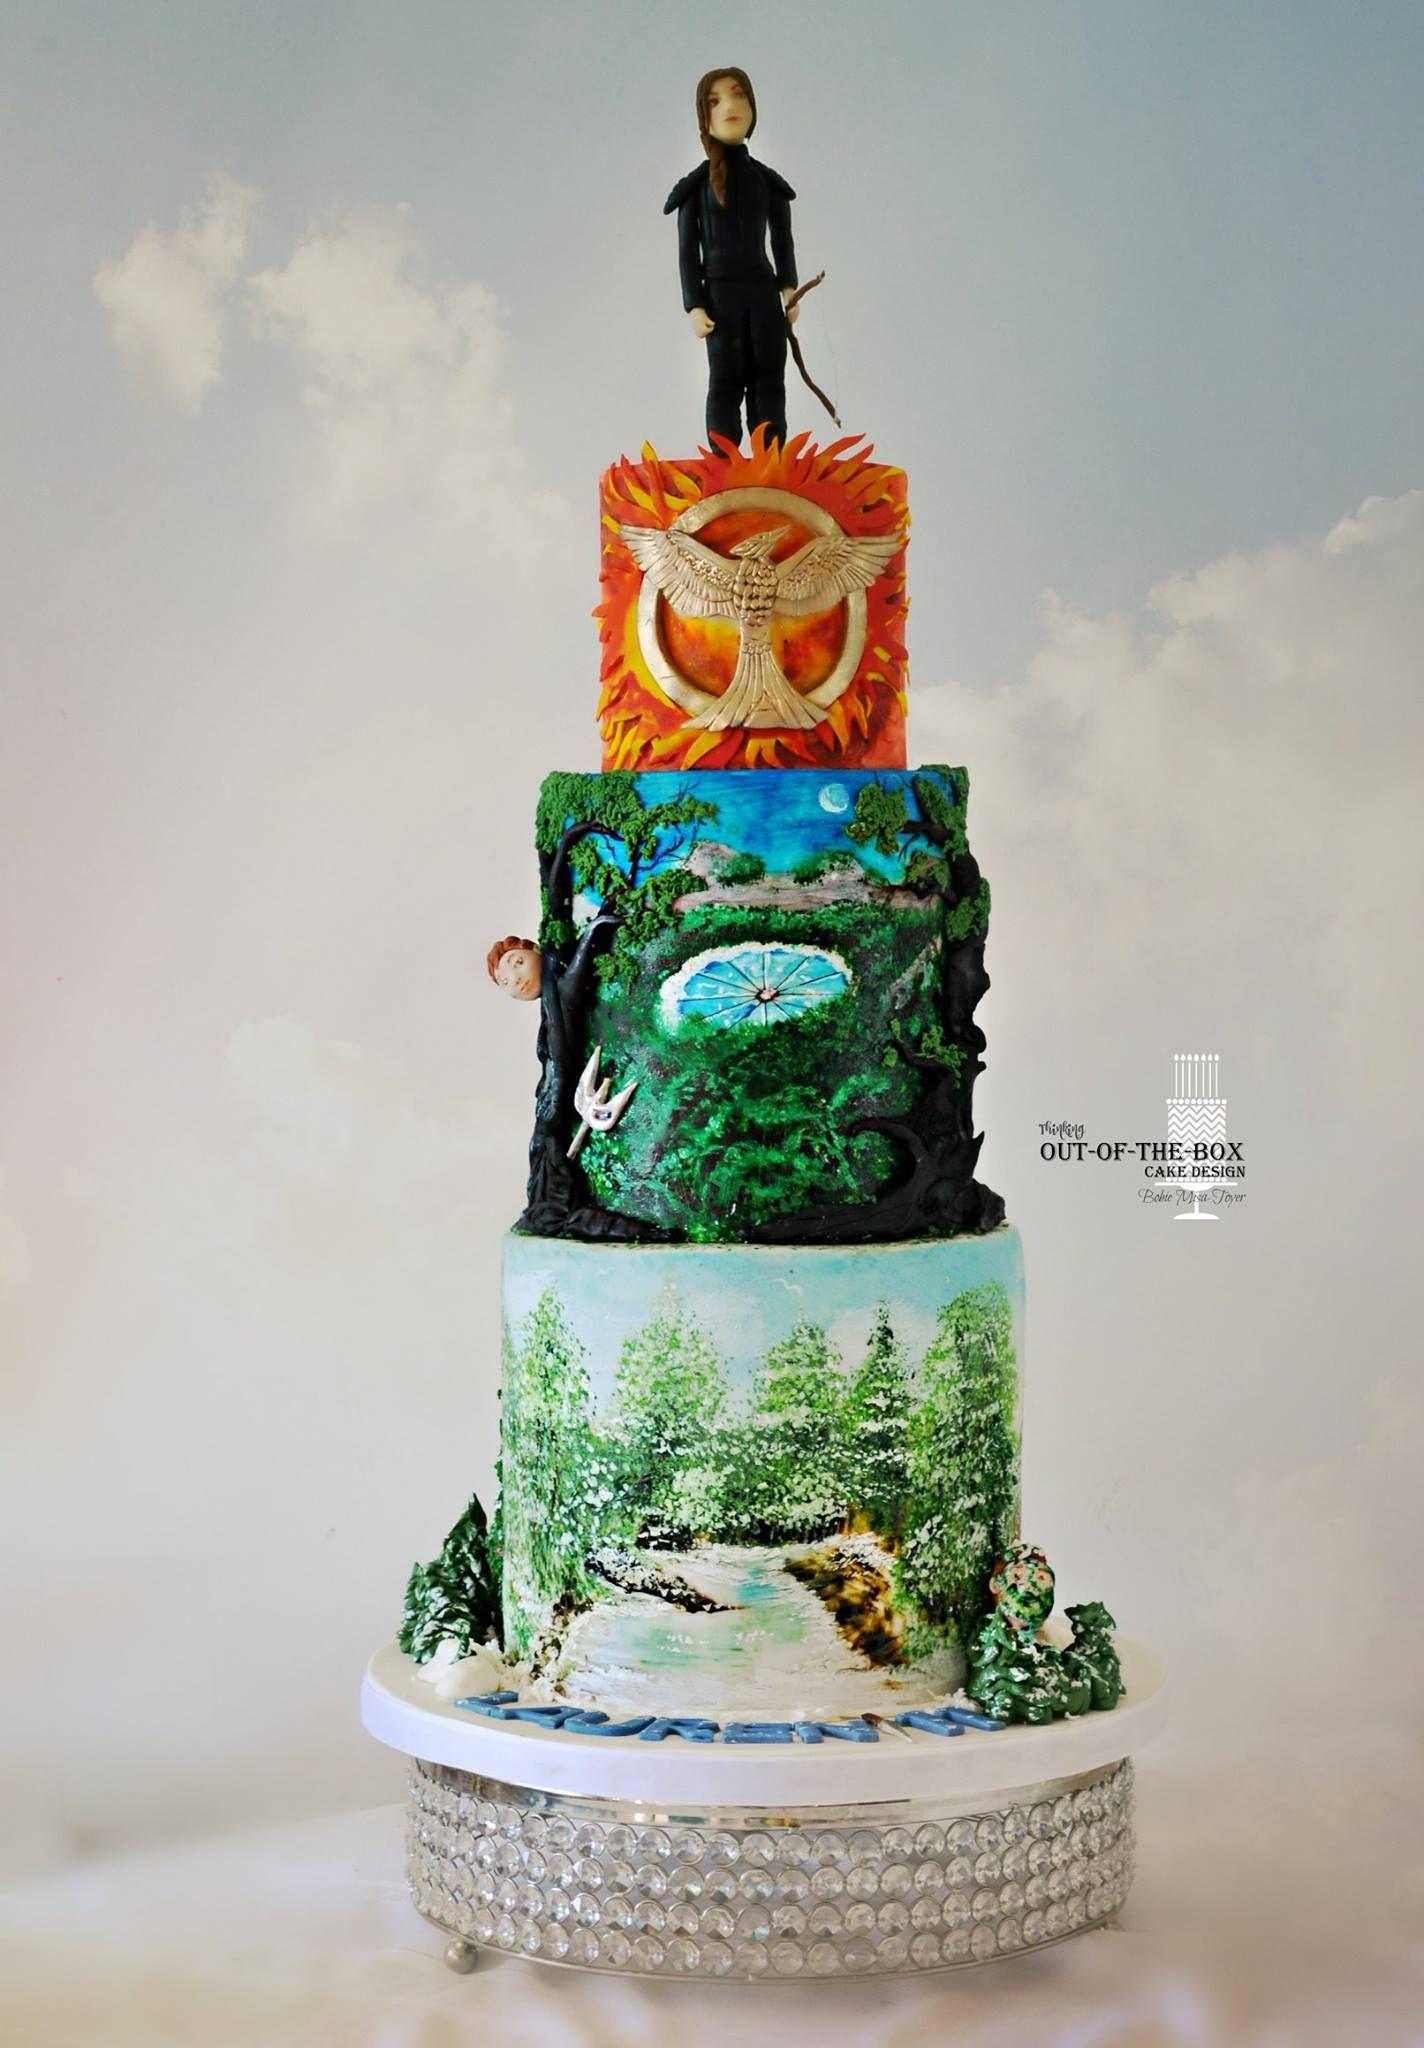 Out Of The Box Cake Design Cakes Movies Tv Shows Pinterest